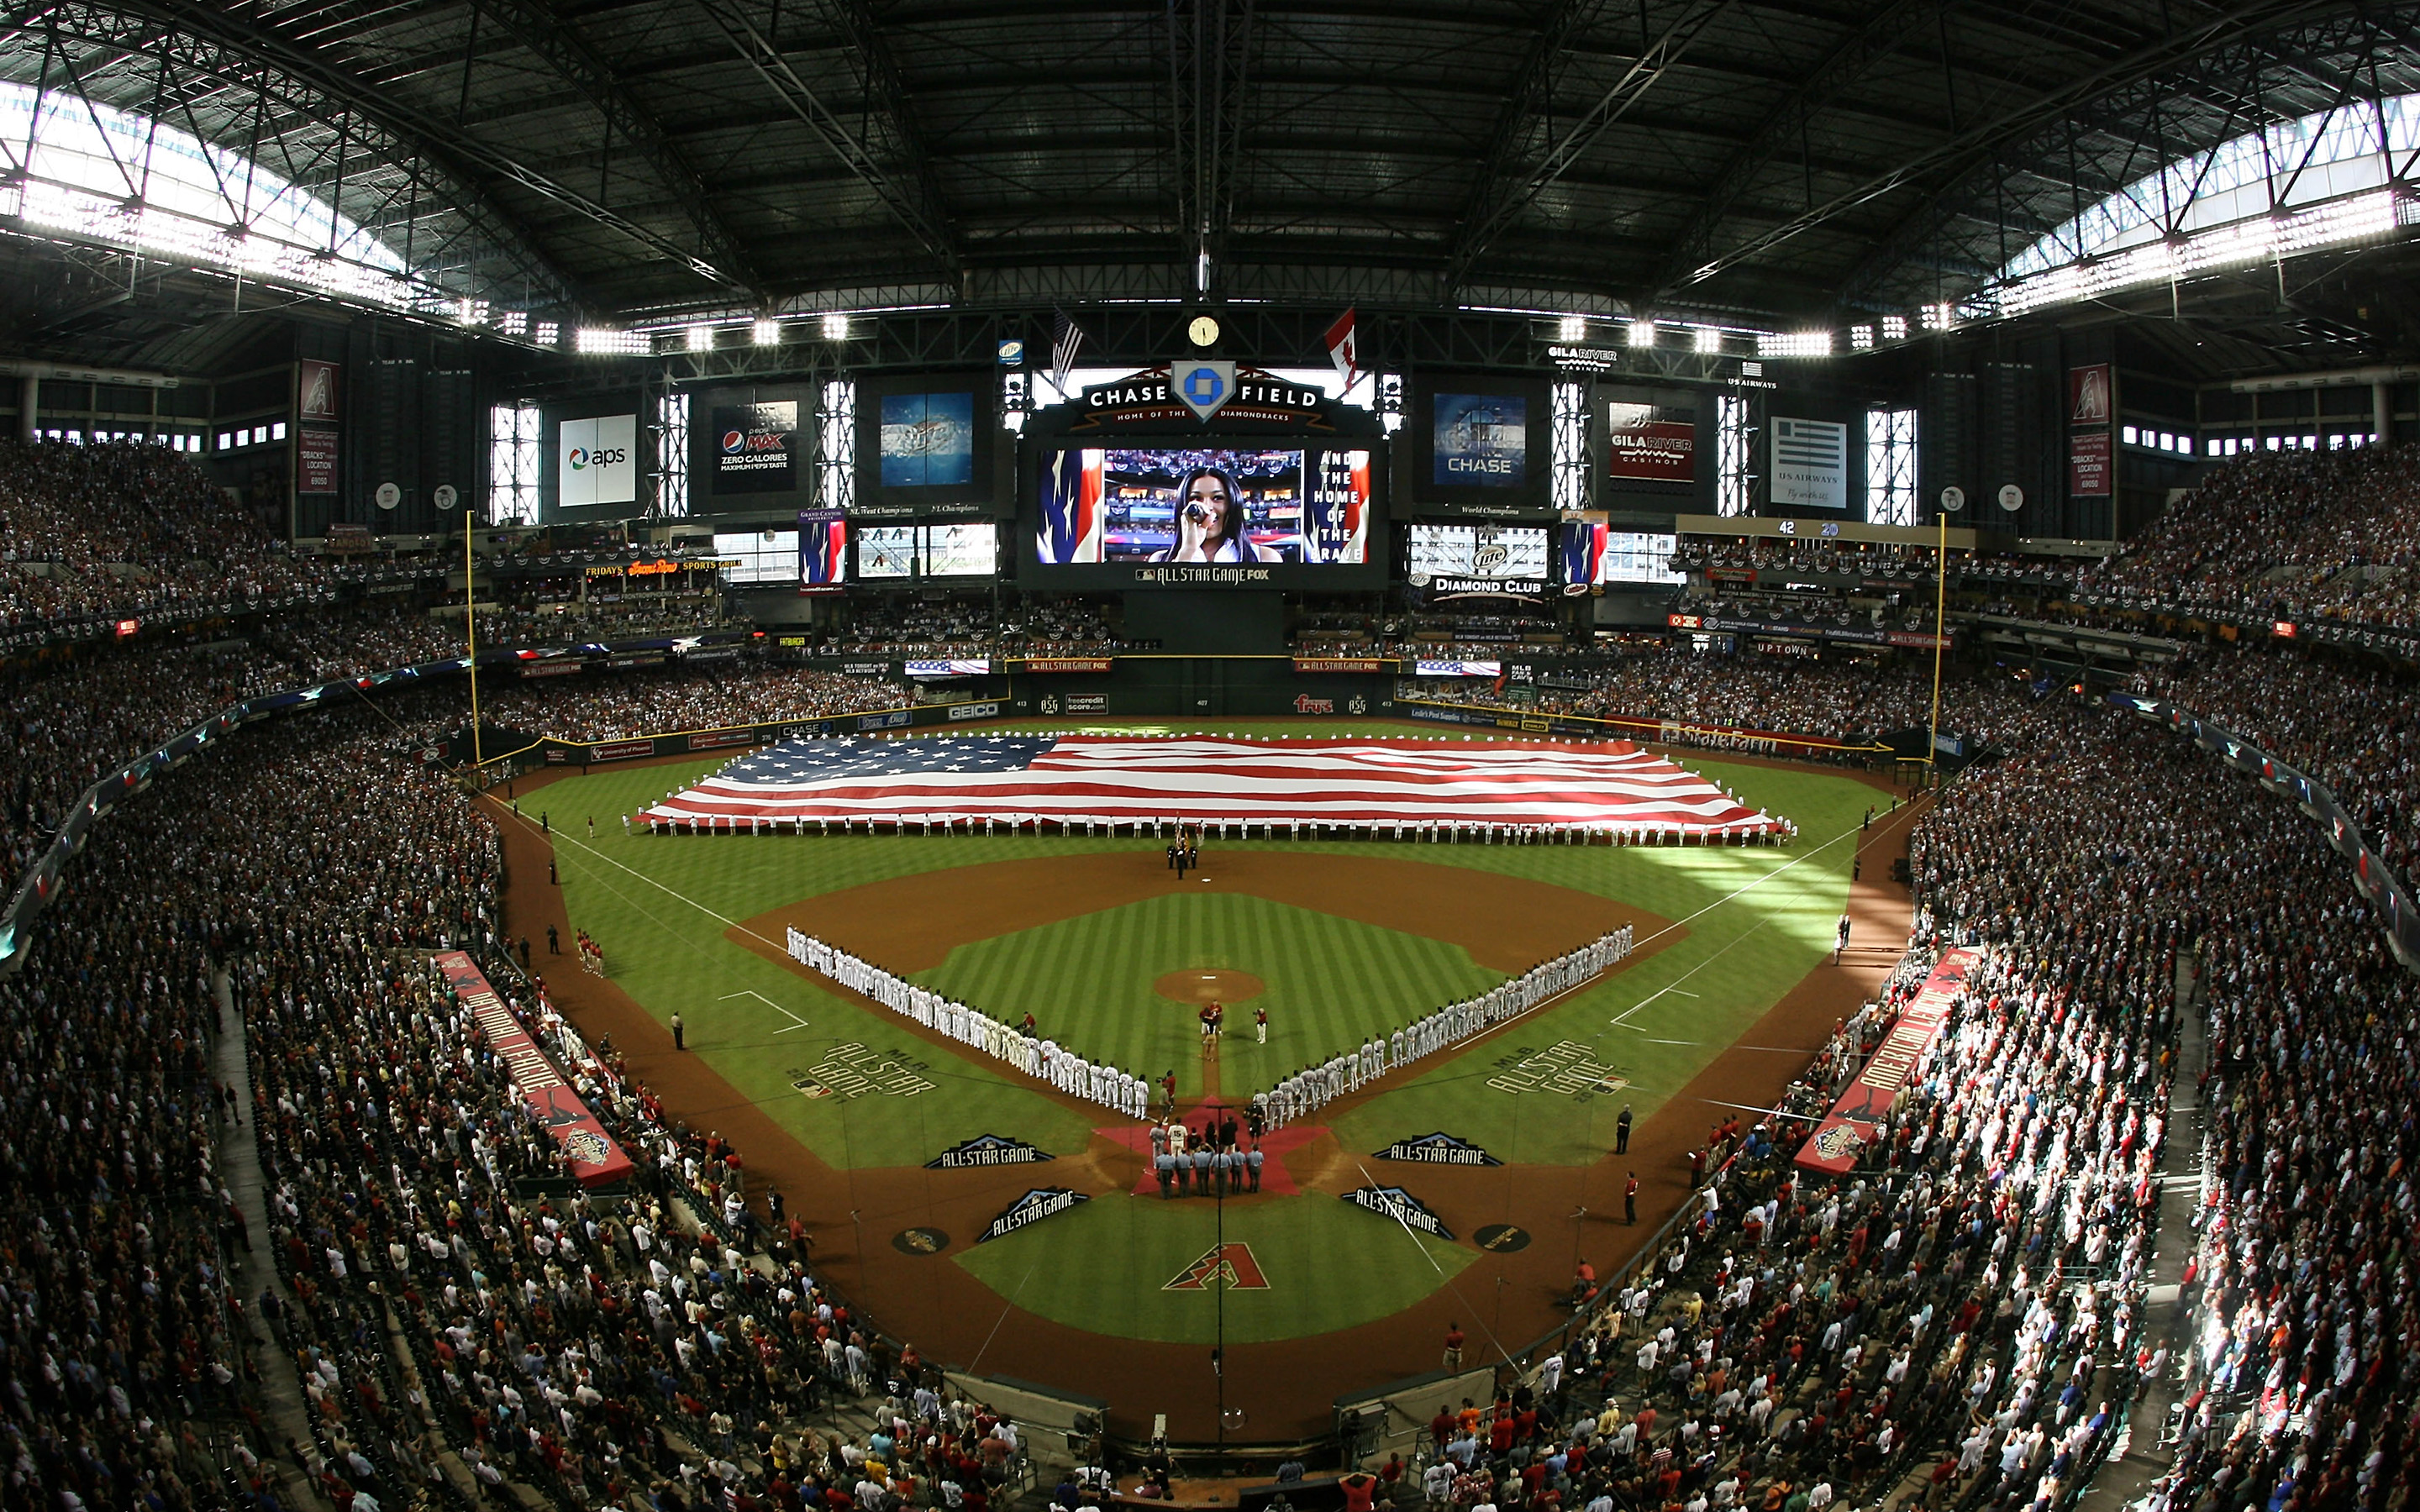 2880x1800 - Arizona Diamondbacks Wallpapers 17